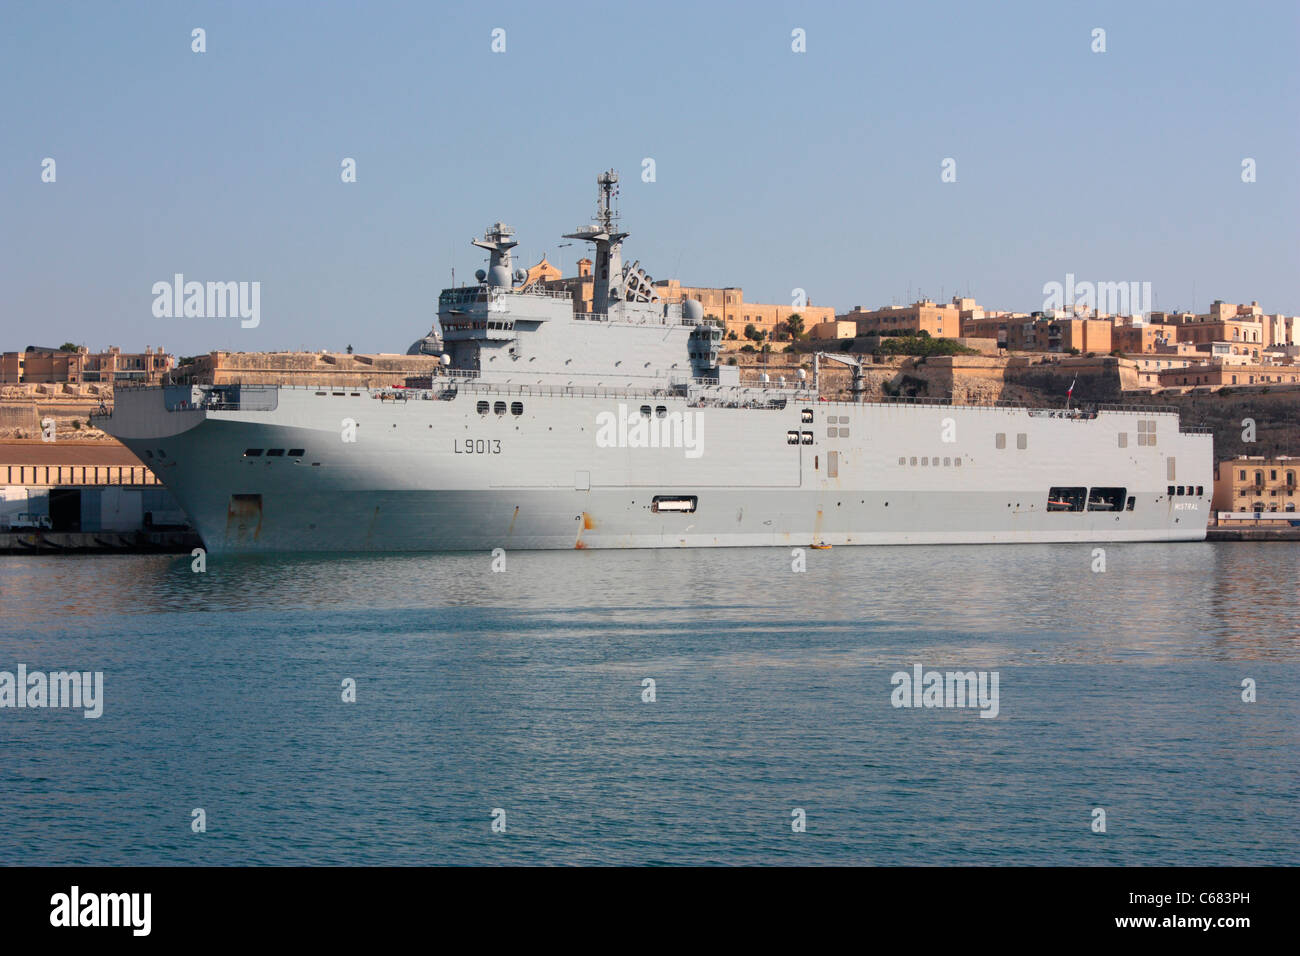 the french navy assault ship mistral in malta during a break from operations off libya